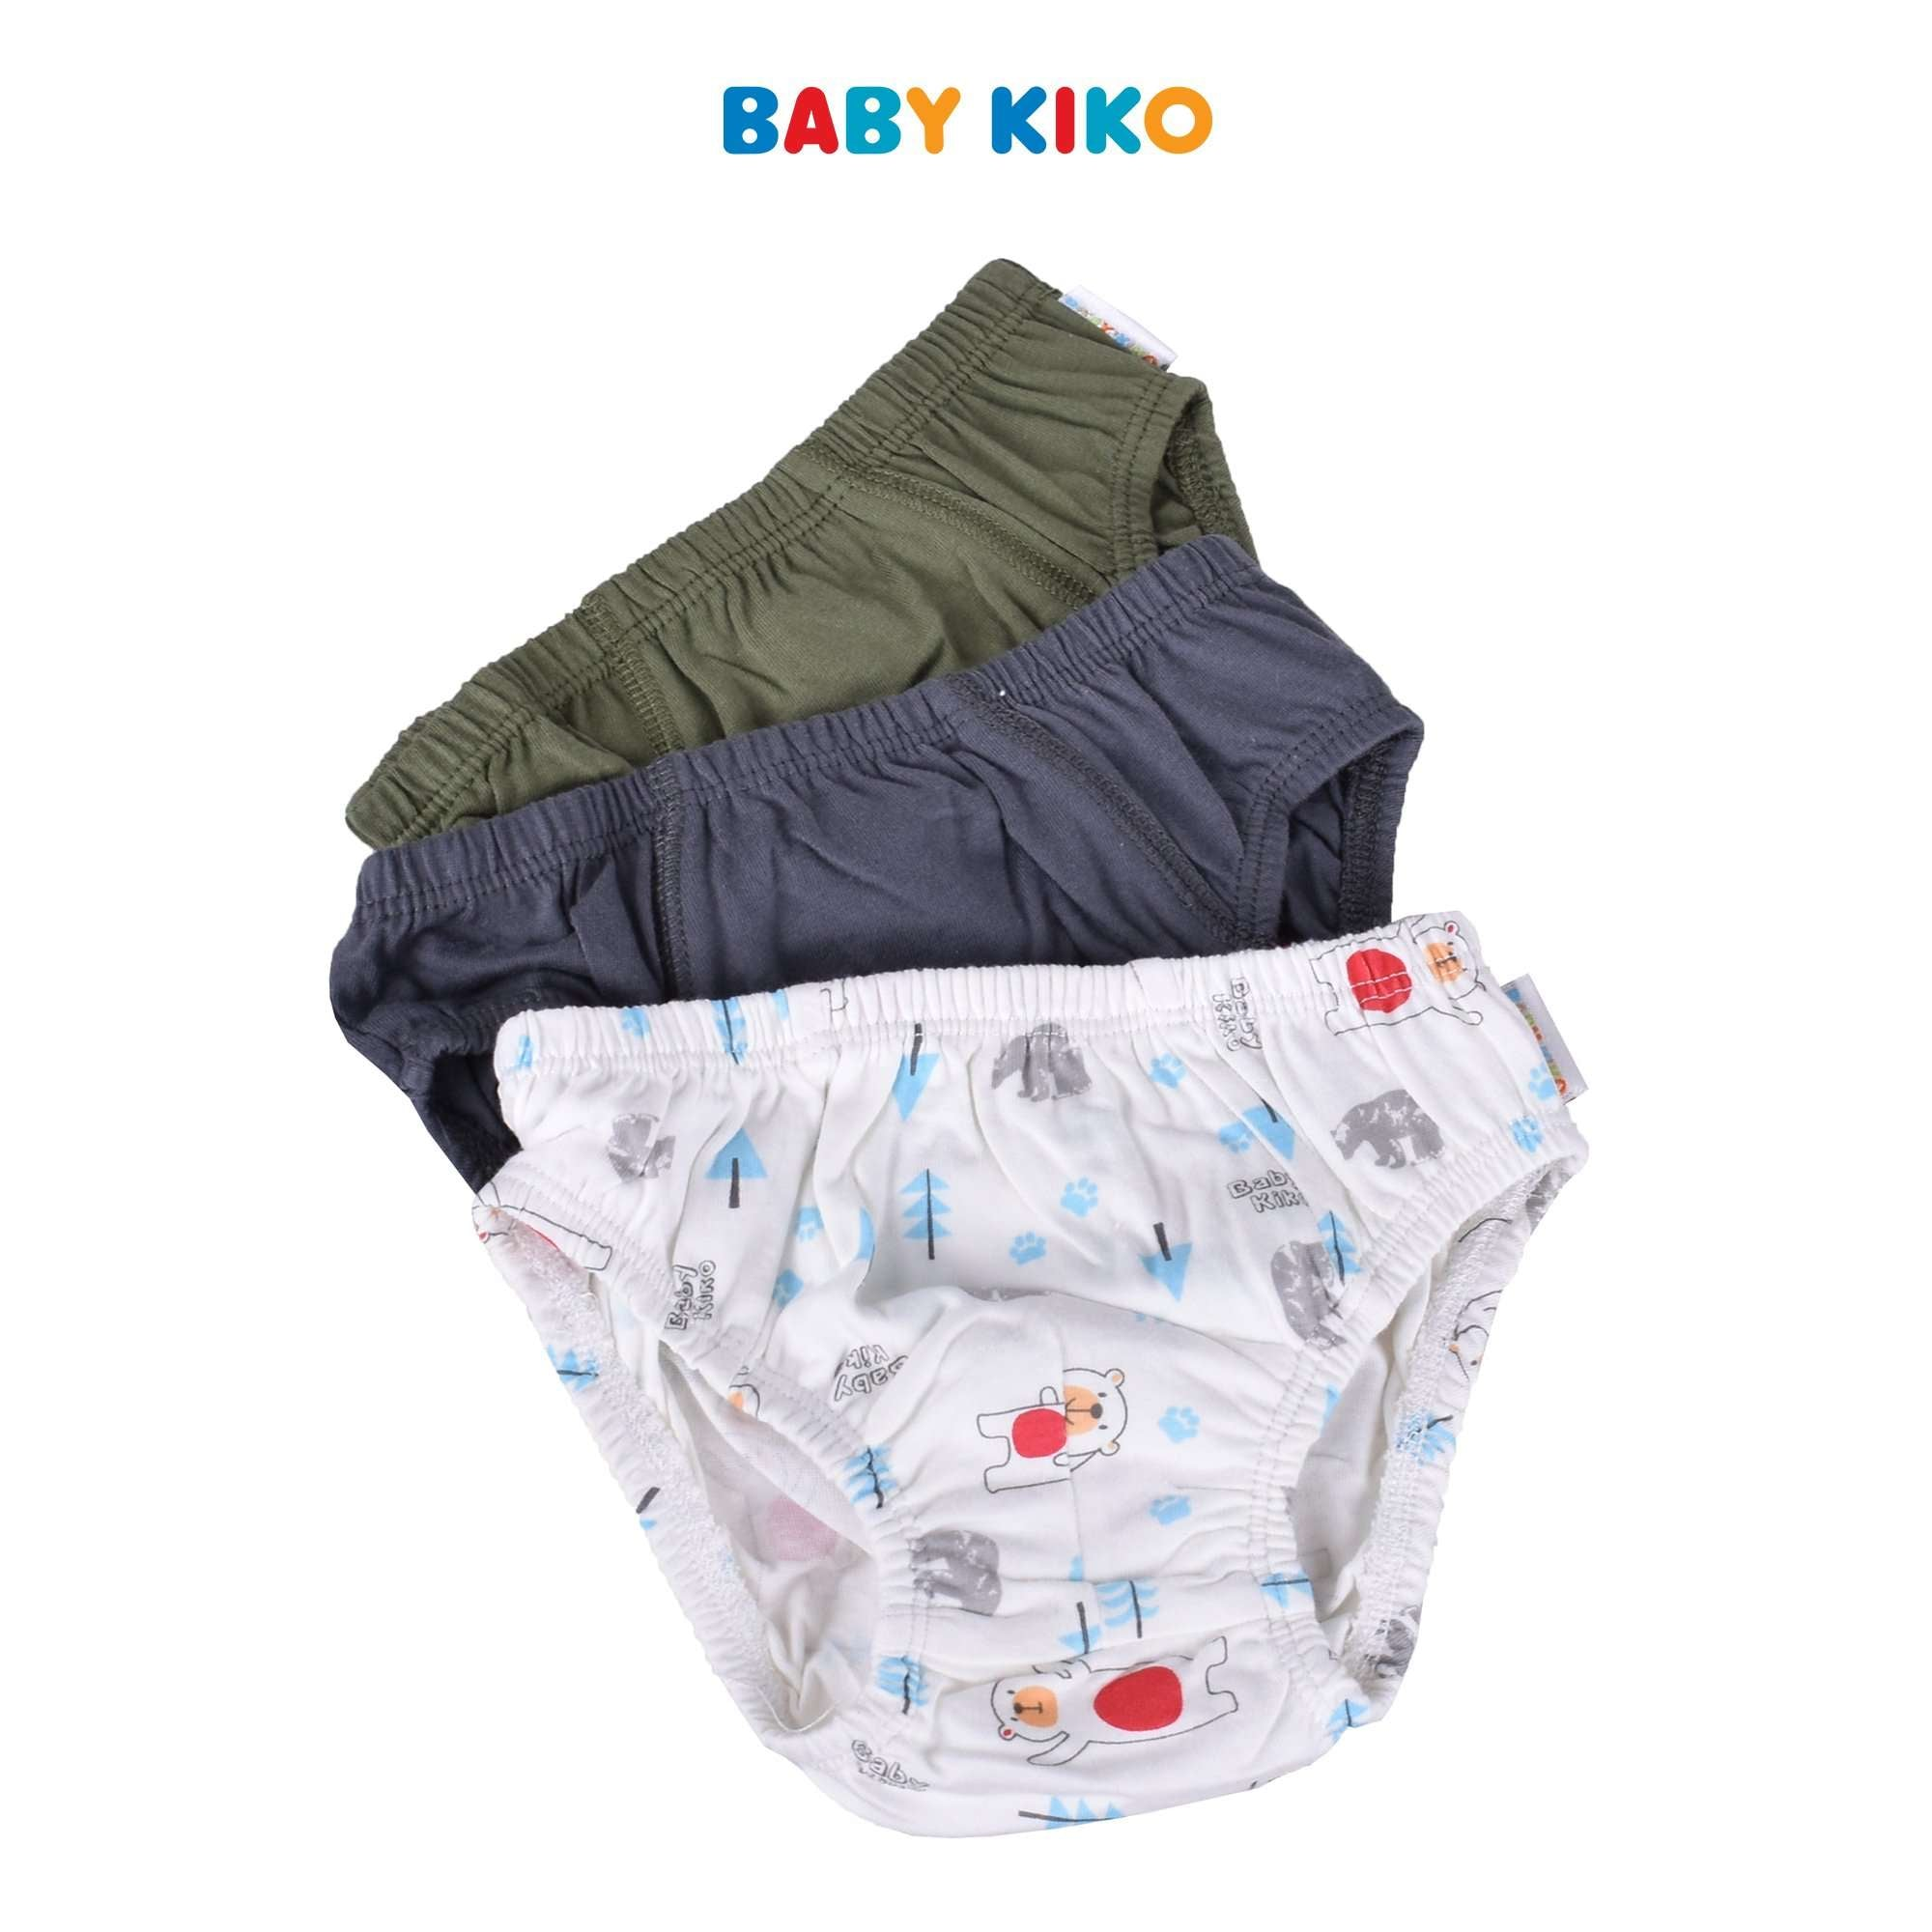 Baby KIKO Toddler Boy 3 In 1 Briefs 325121-742 : Buy Baby KIKO online at CMG.MY